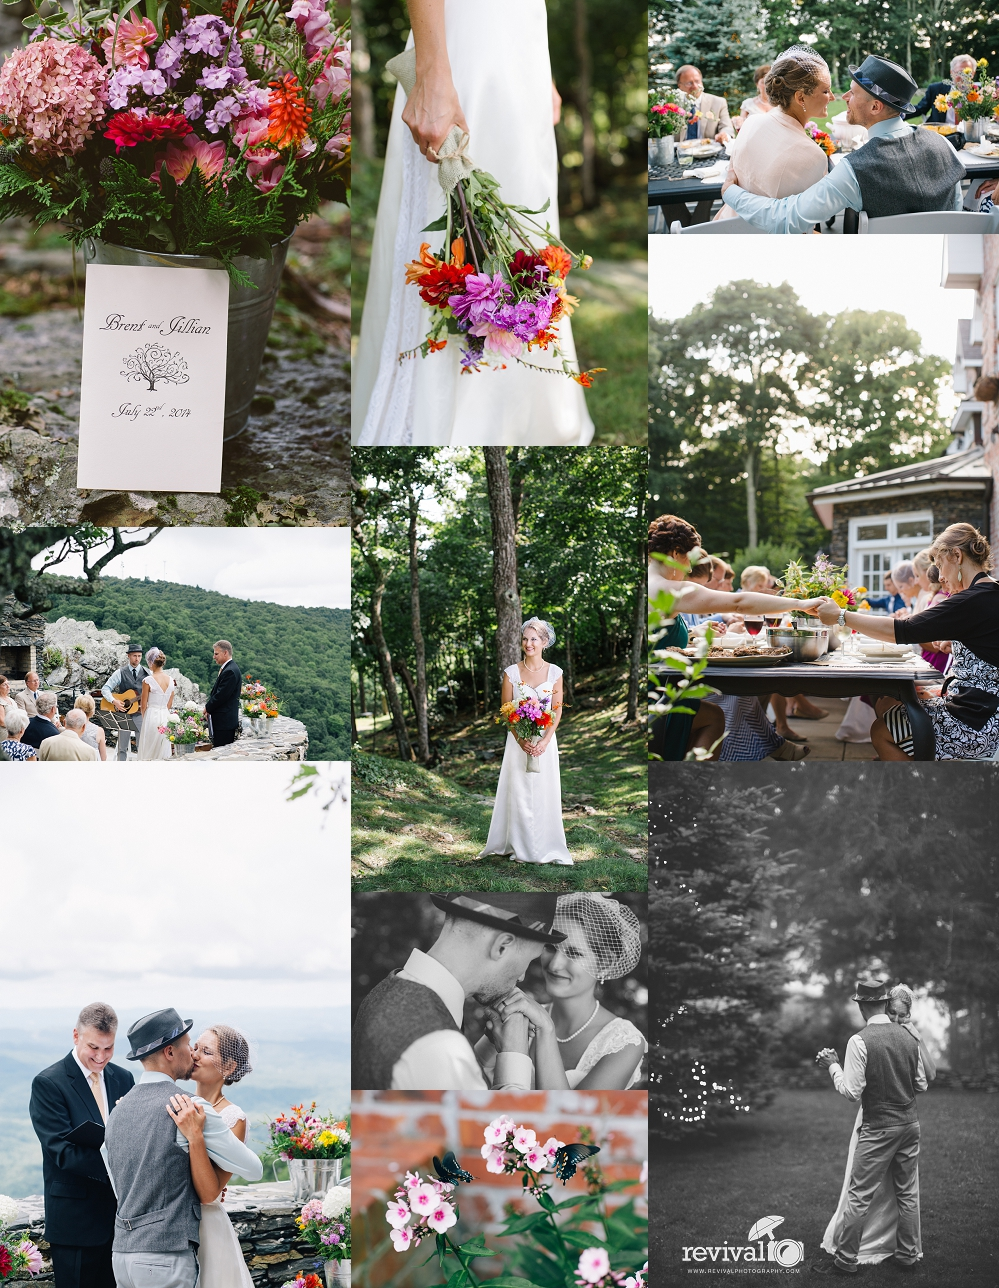 Photos by Revival Photography Intimate Mountain Destination Wedding at Twickenham House Jefferson, NC www.revivalphotography.com